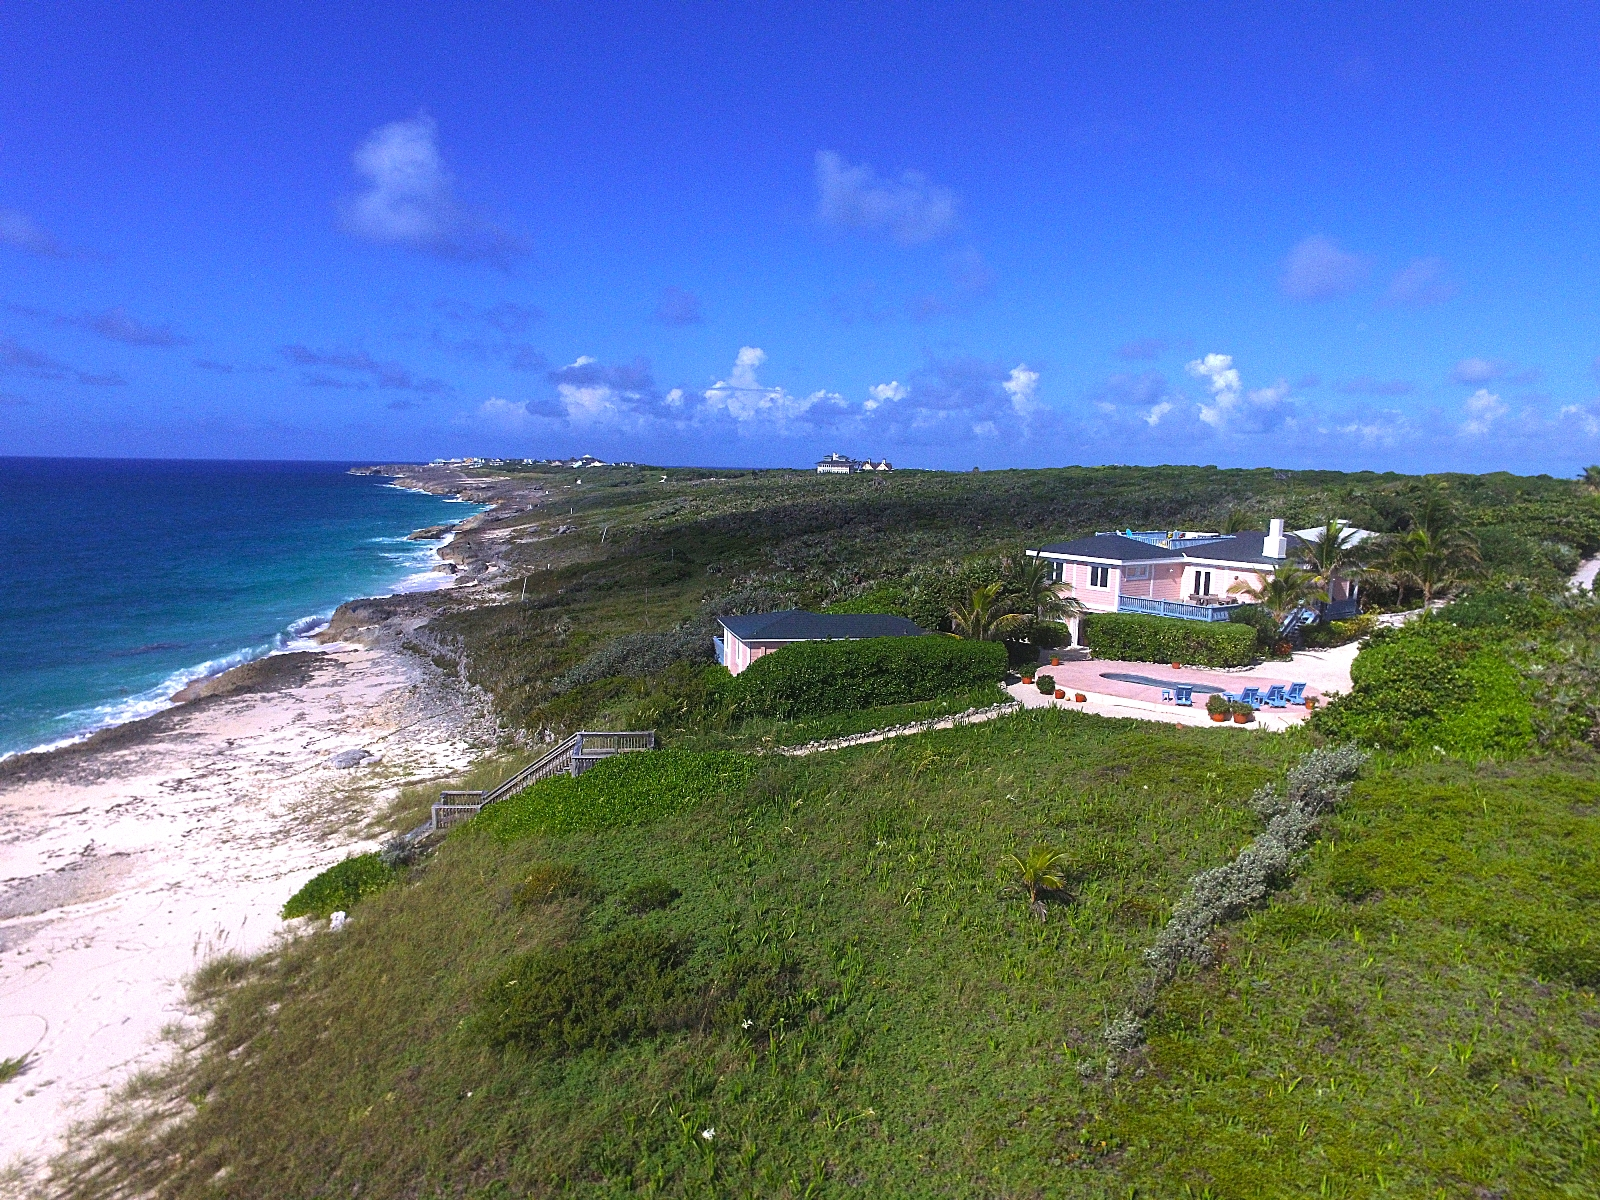 Villa per Vendita alle ore Walking Stick, a 2.2.Acre Atlantic Estate at The Abaco Club on Winding Bay MLS-27717 Abaco, Bahamas